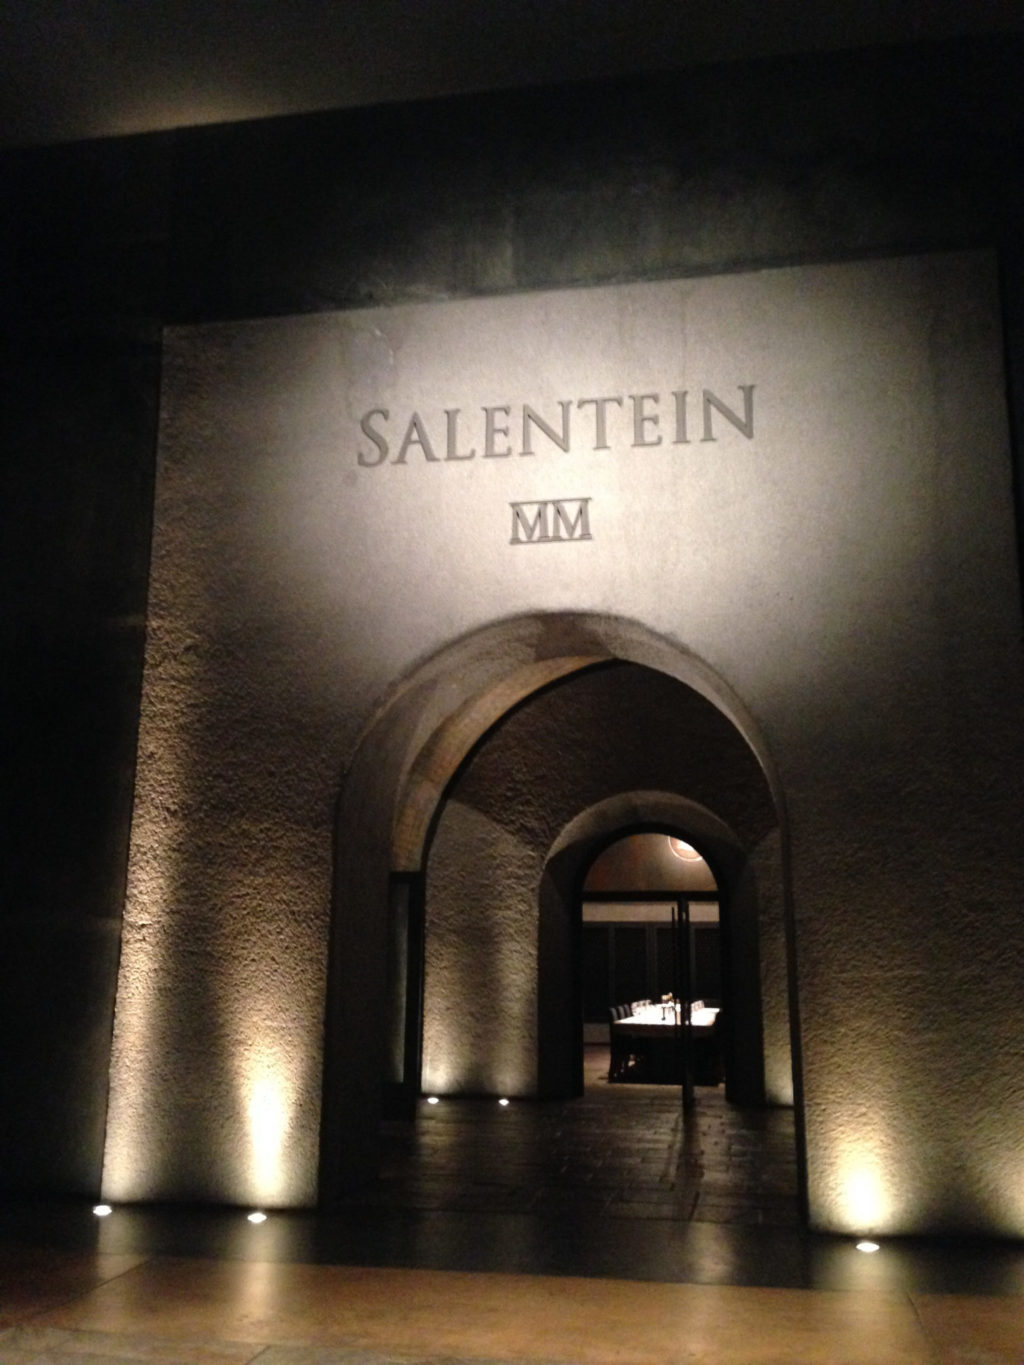 Bodegas Salentein in the Uco Vally, Mendoza, Argentina. Photo by Gloria J. Chang.